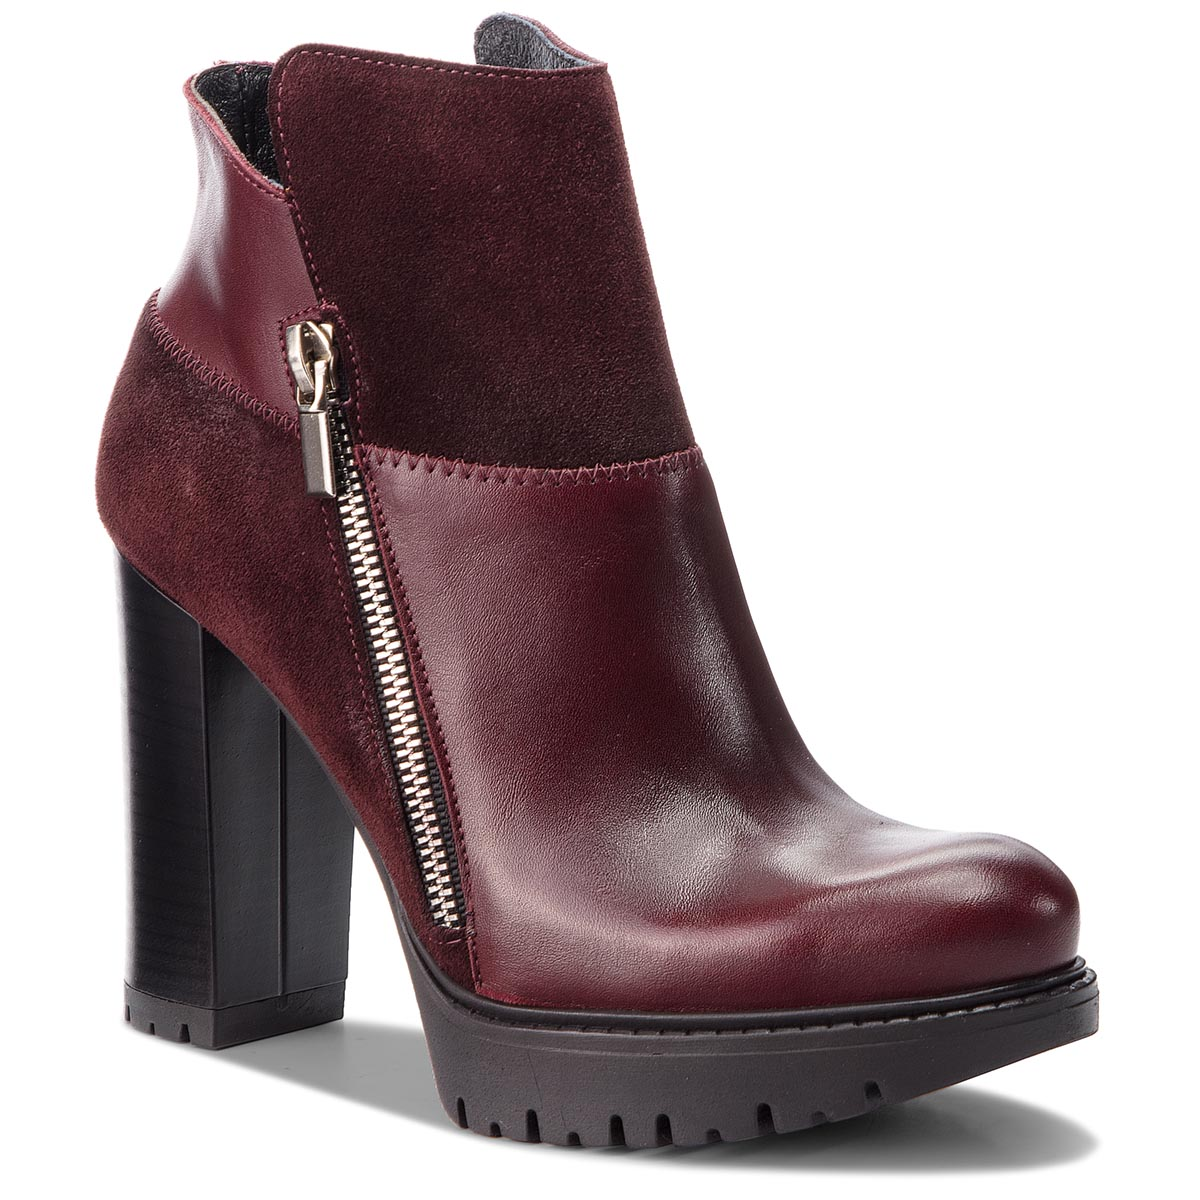 Bottines EDEO - 3257-1001/863 Bordo